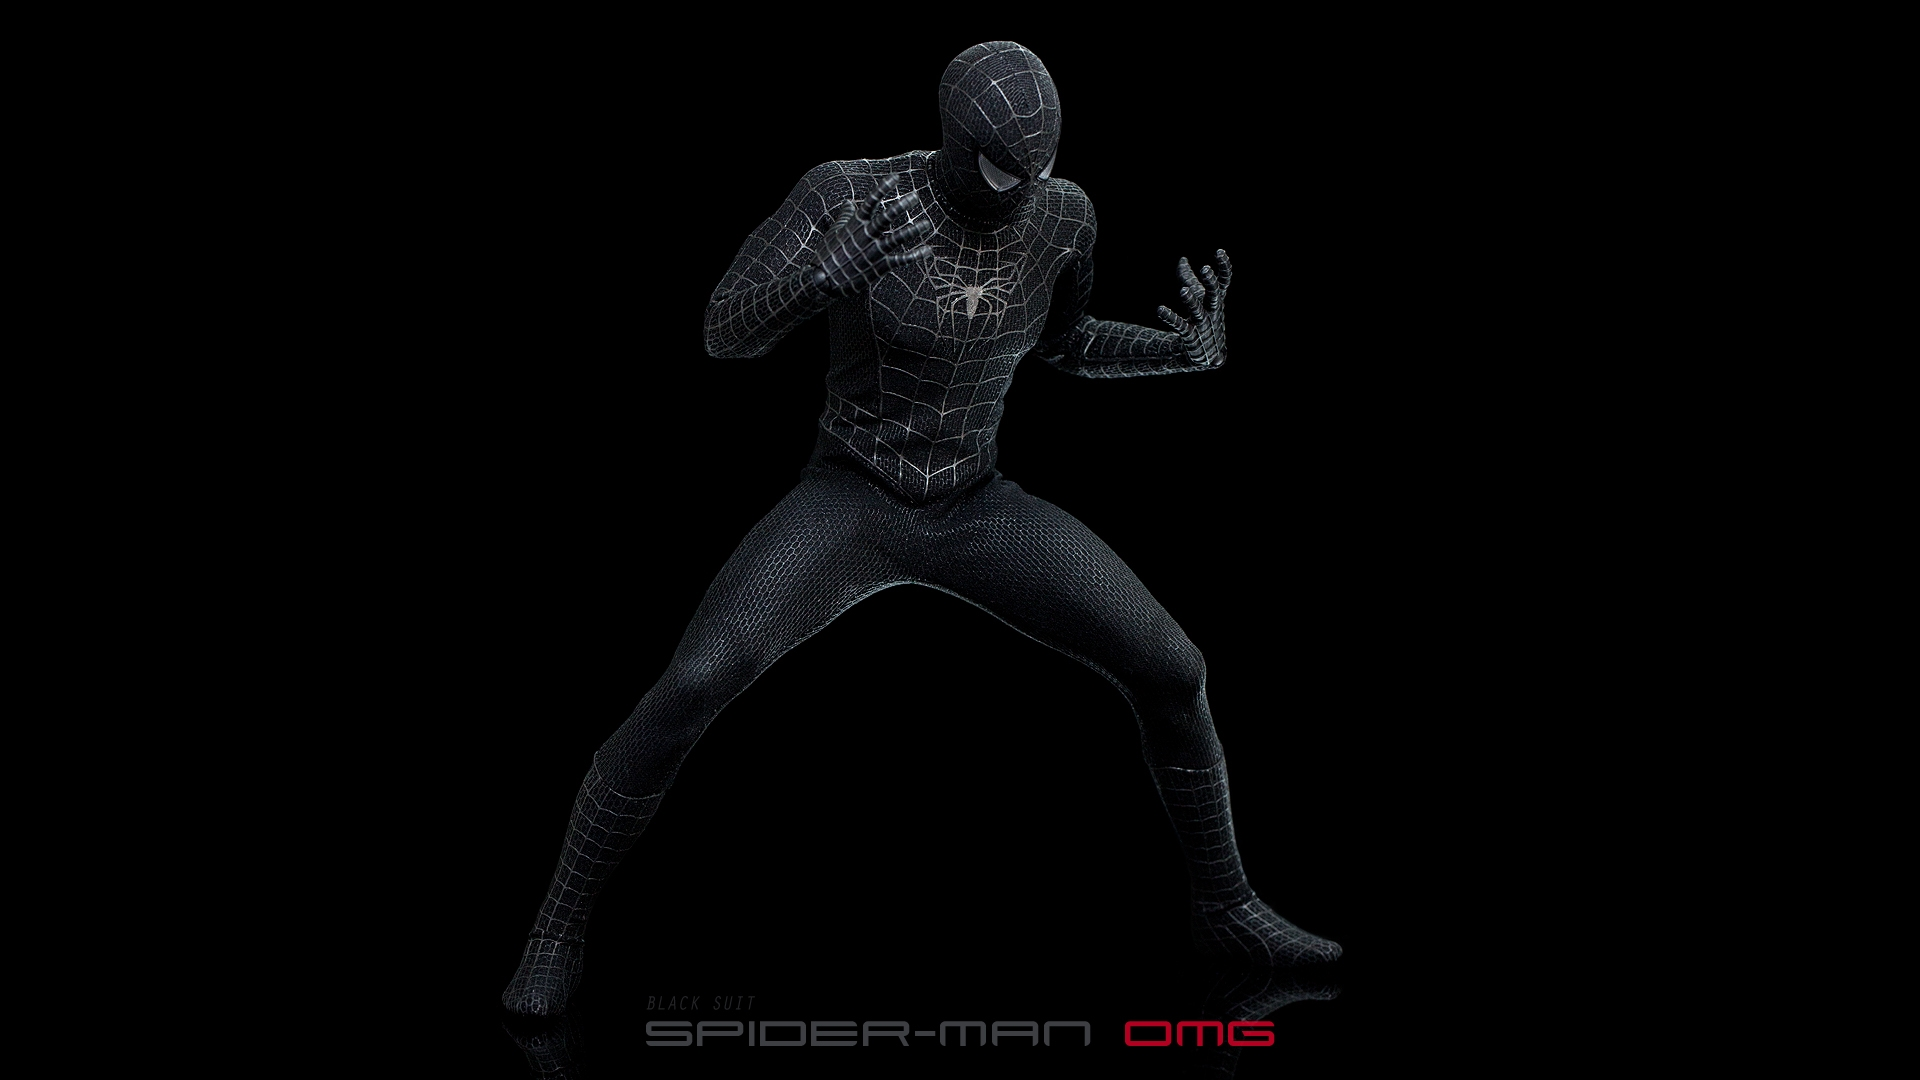 spiderman costume black